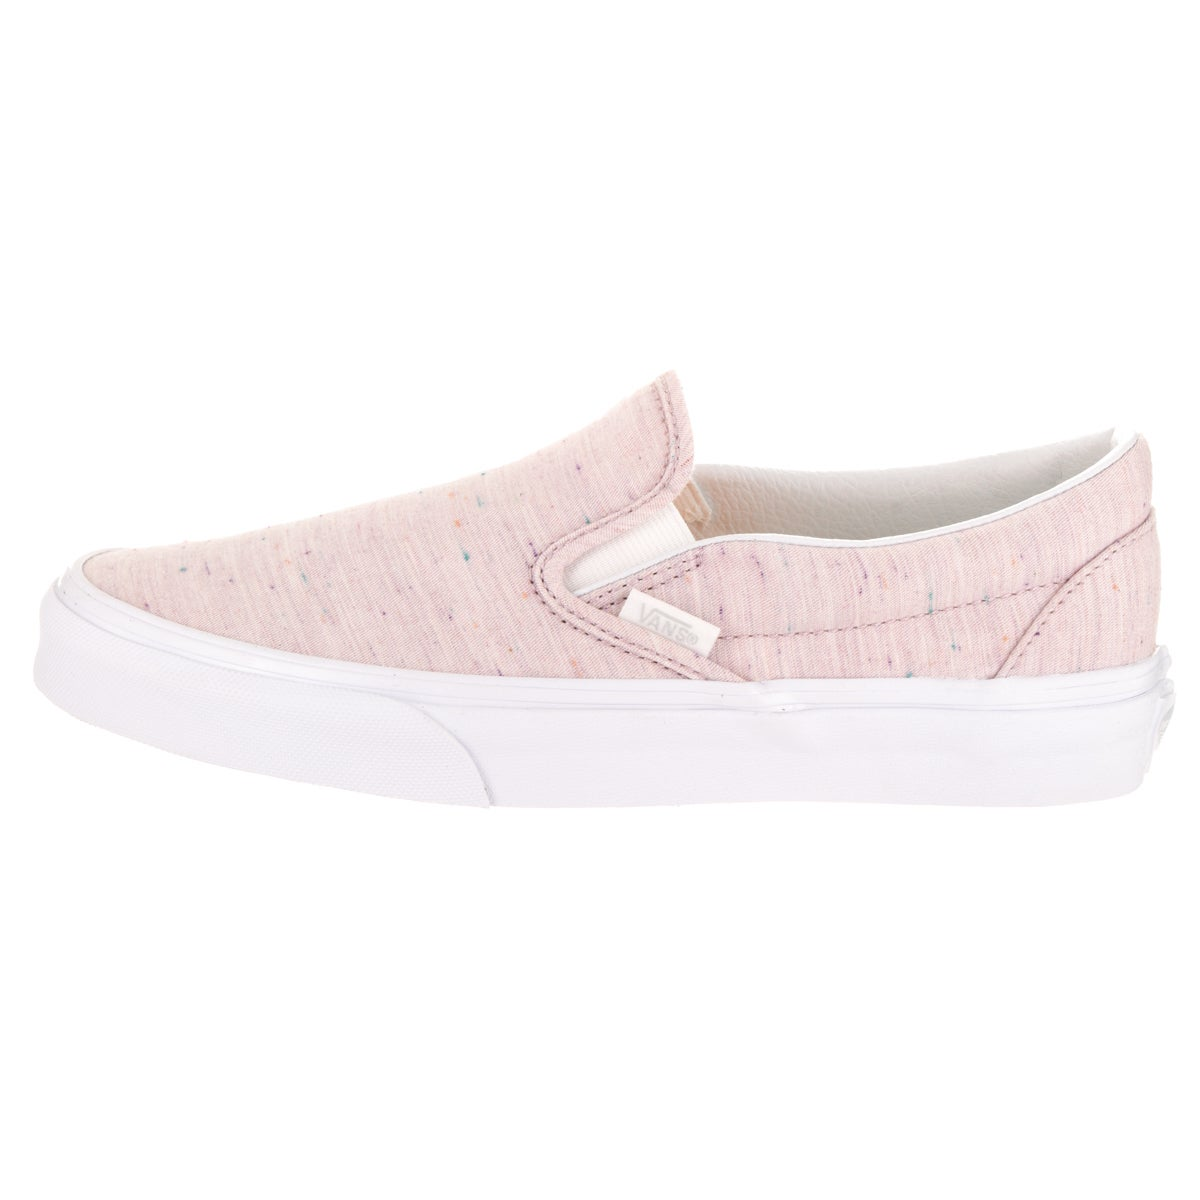 077780a5fb Shop Vans Unisex Classic Slip-On (Speckle Jersey) Skate Shoe - Free  Shipping Today - Overstock - 13968754